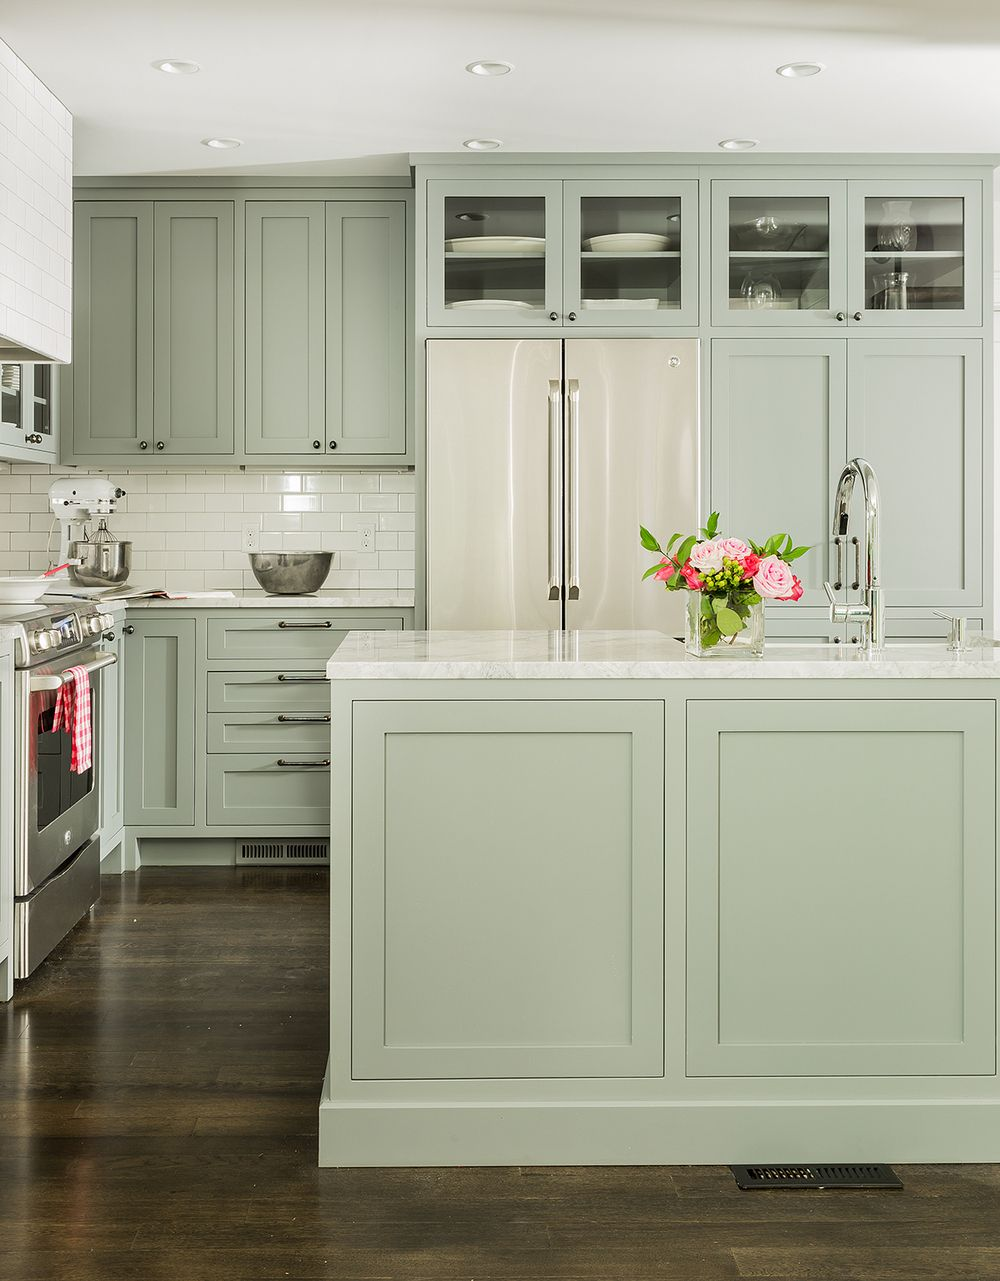 Subtle Shades for Kitchen Cabinets | Naples, Florida Inspired Decor ...